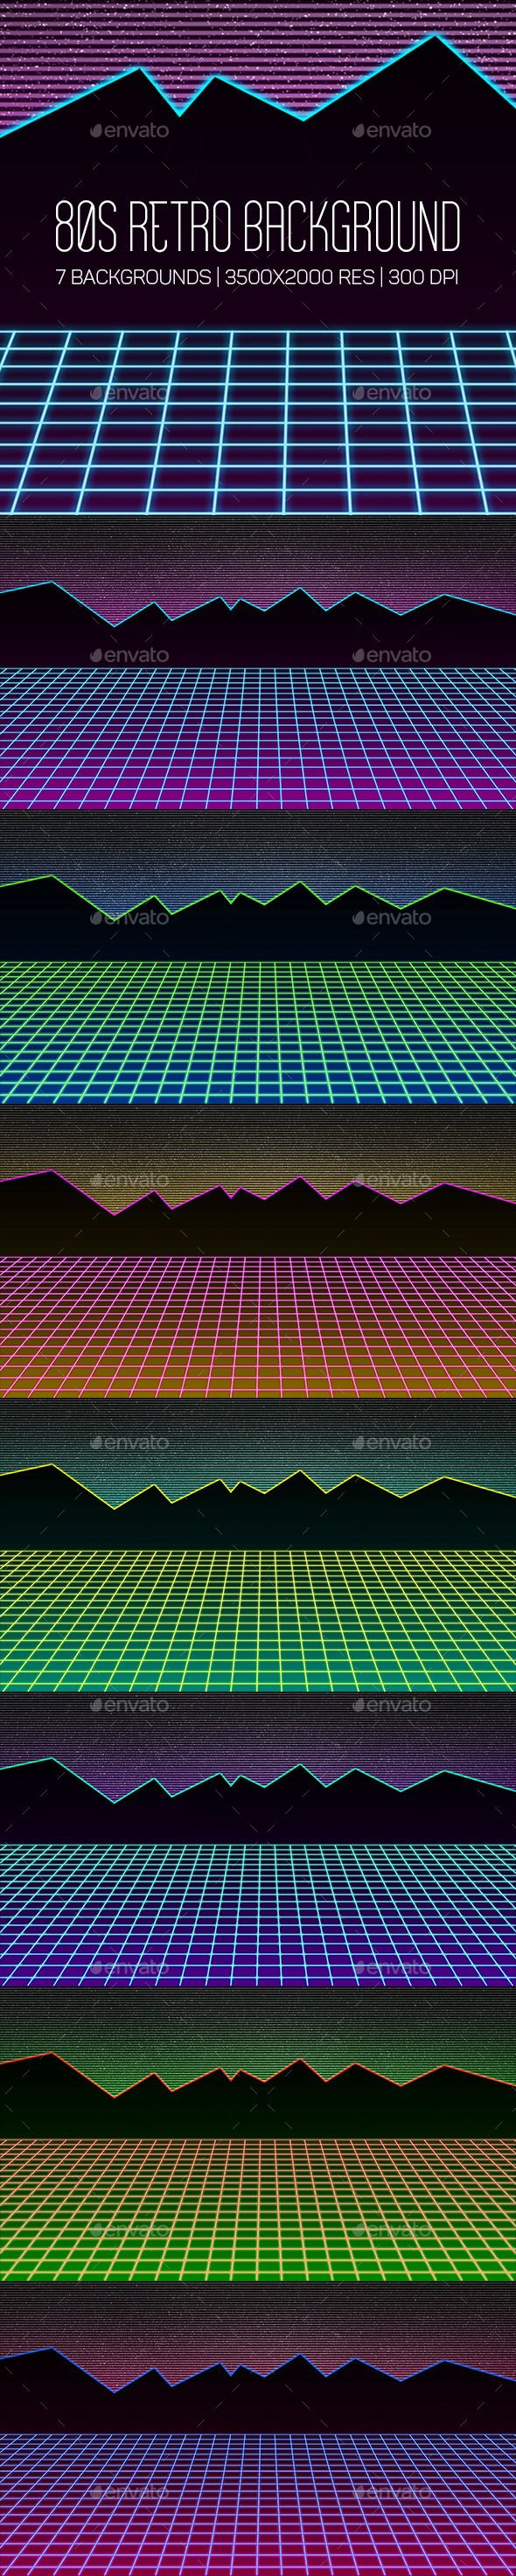 80s Retro Background by Starmotyl Includes 7 high quality JPG files